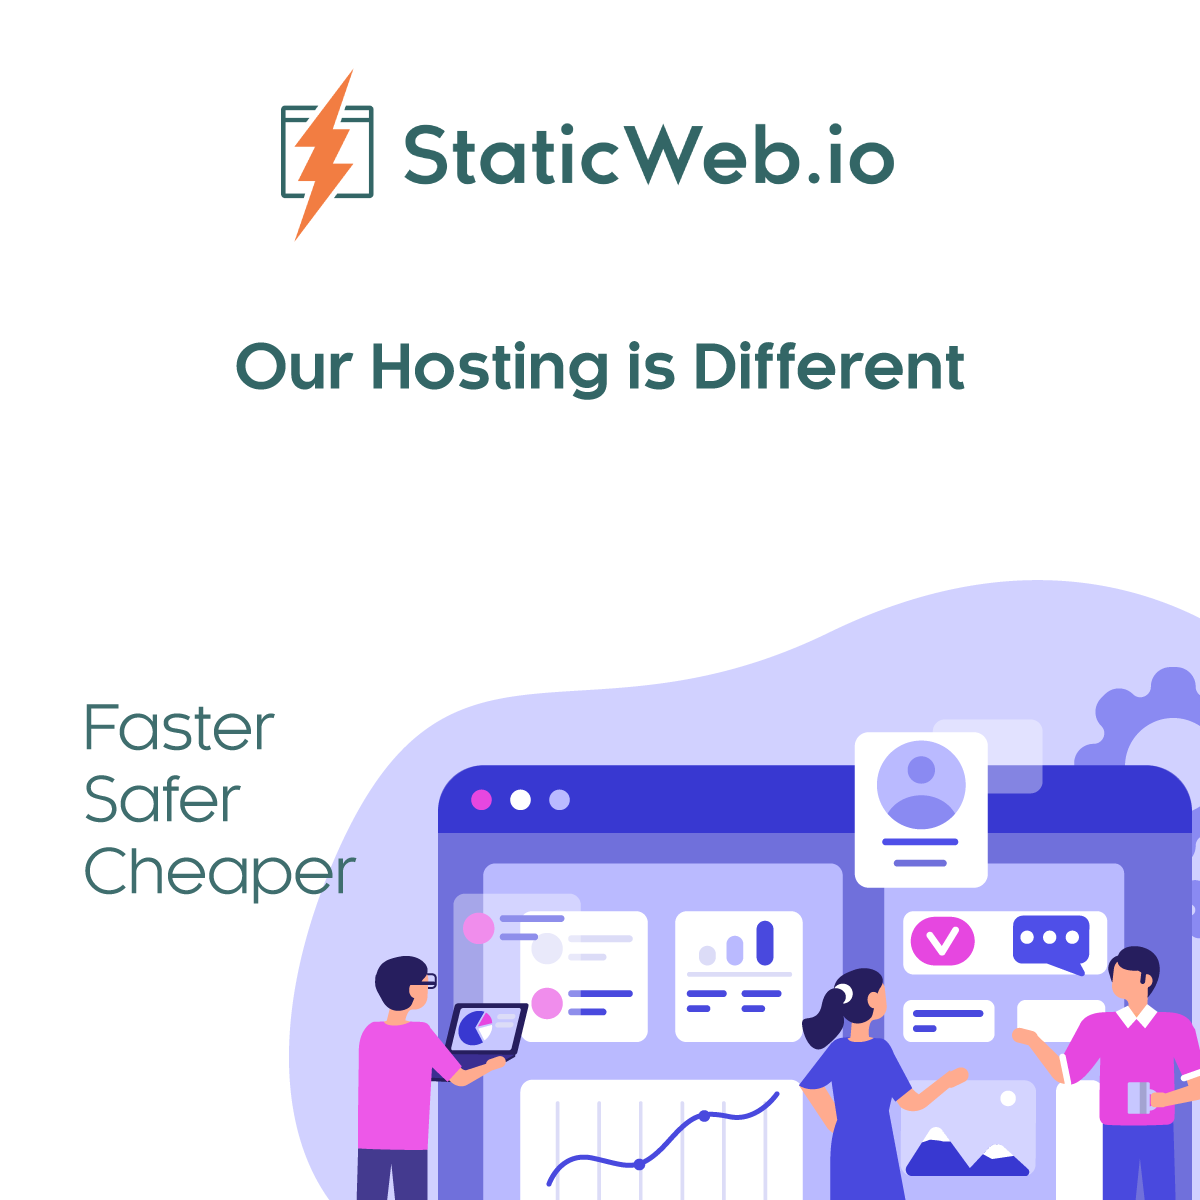 StaticWeb.io - Our Hosting Is Different: Faster, Safer, Cheaper